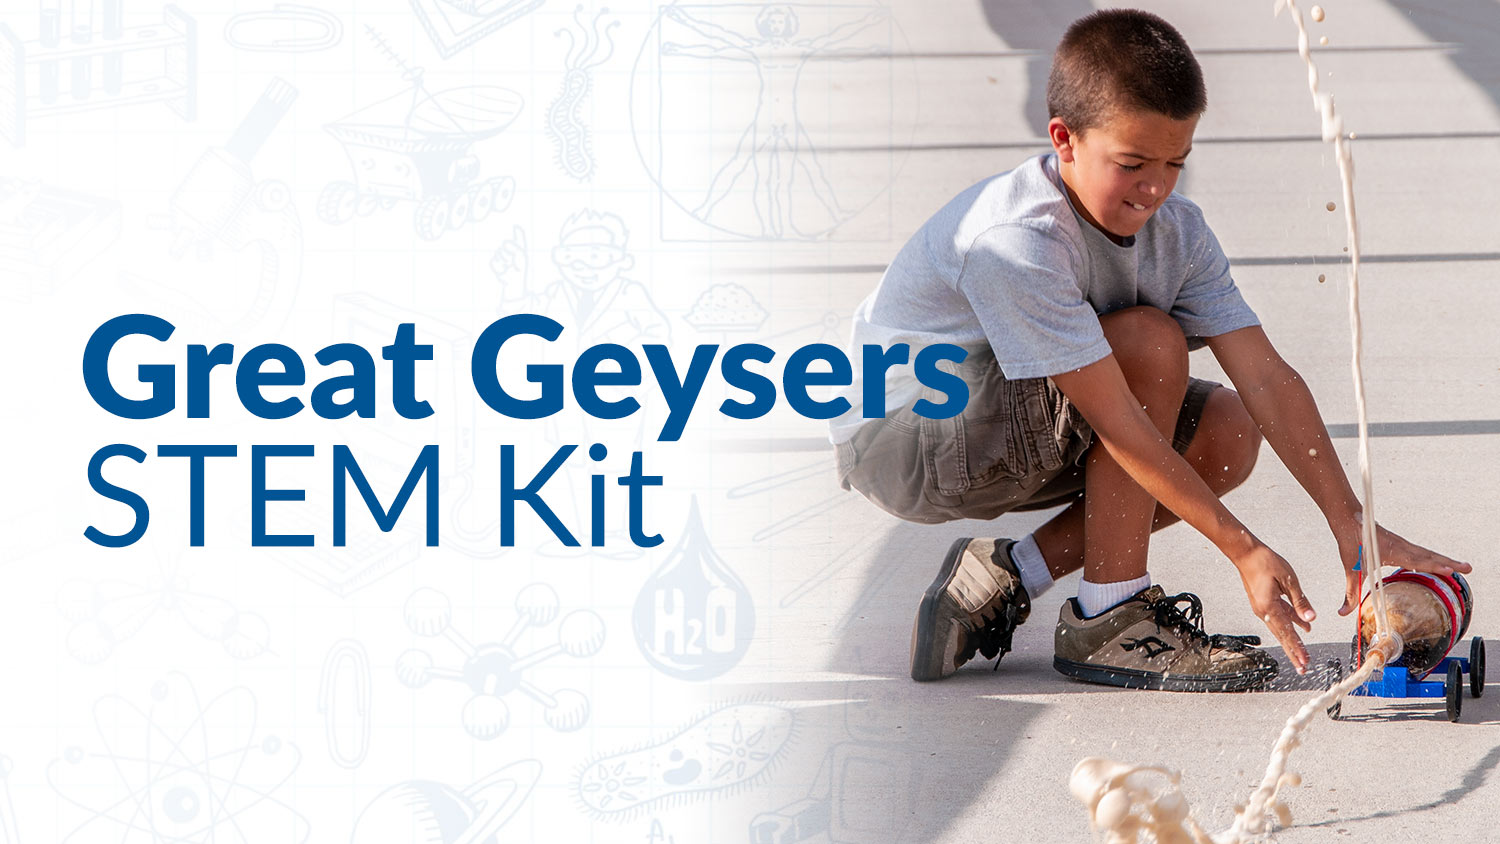 Great Geysers STEM Kit